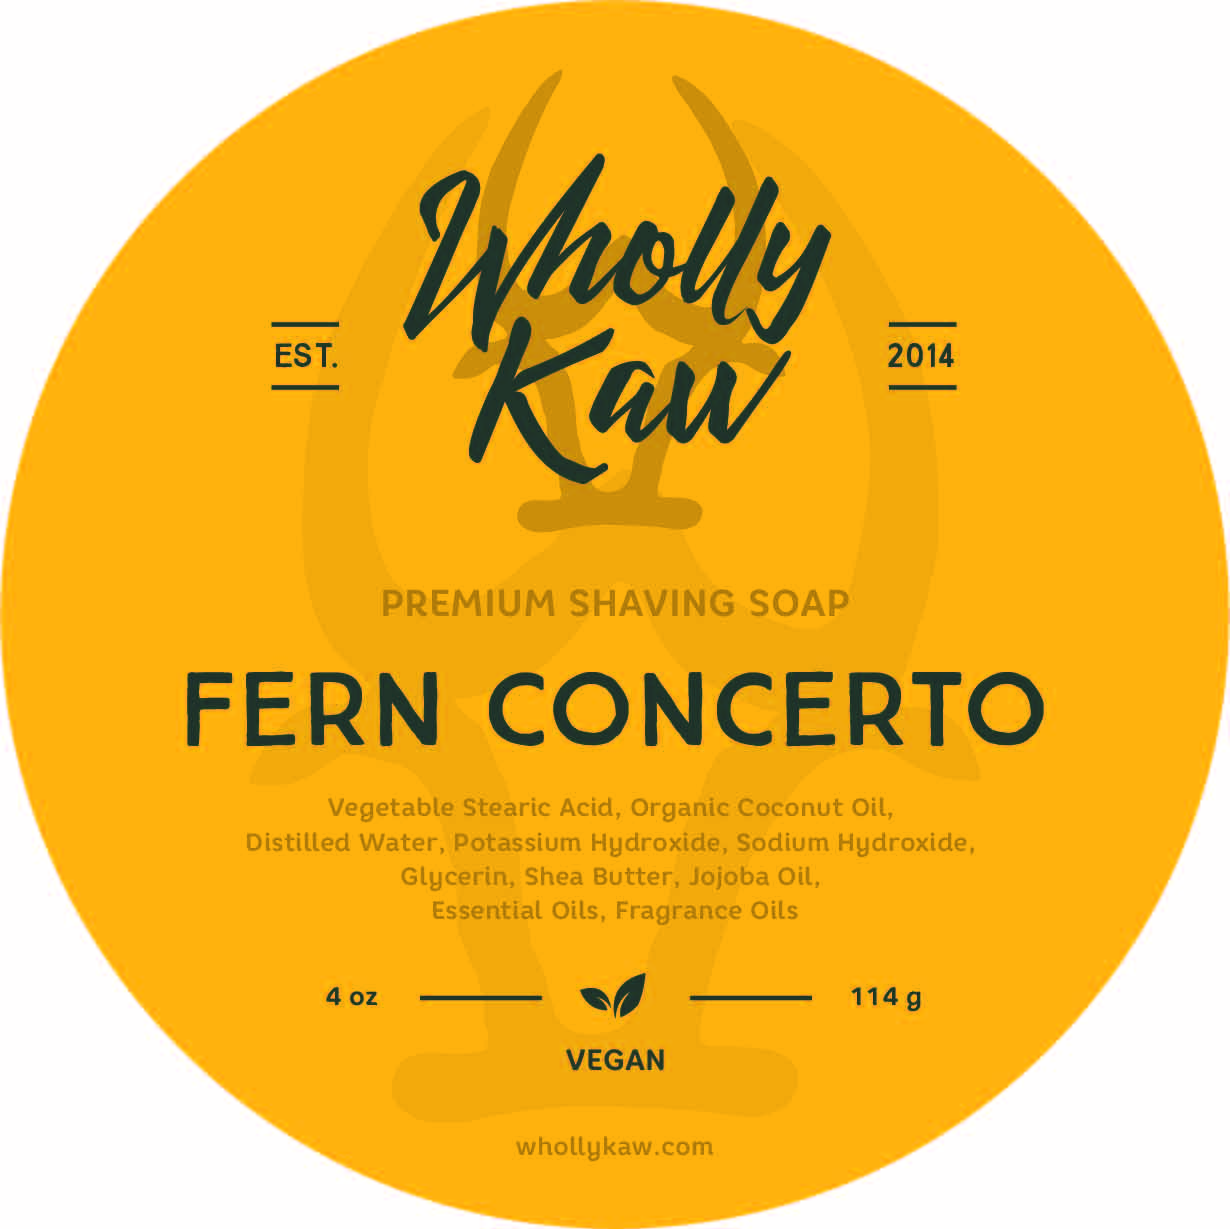 Wholly Kaw - Fern Concerto - Soap (Vegan) image